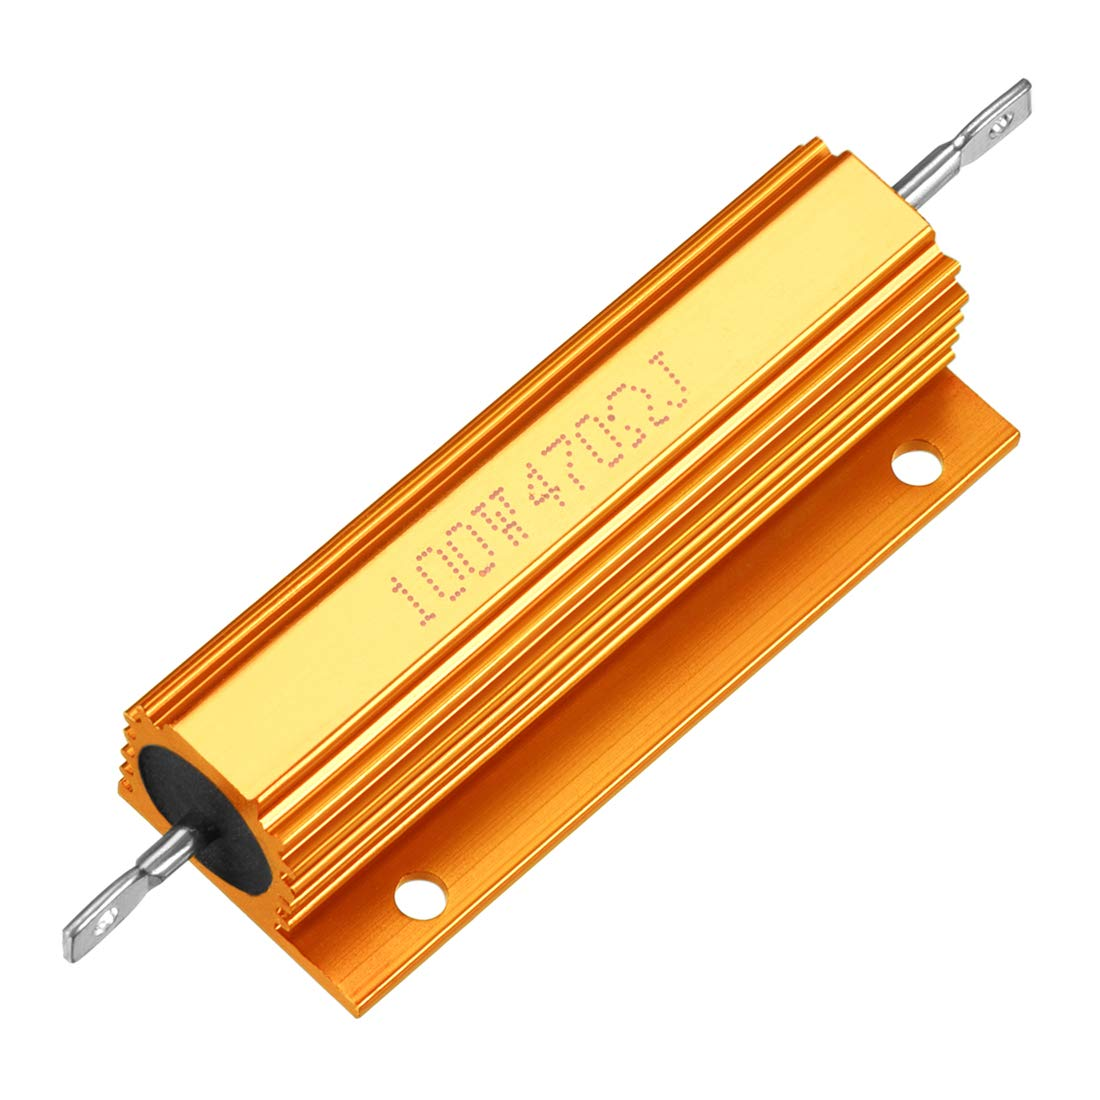 uxcell Aluminum Case Resistor Extra Wire 100W 2 Ohm Wirewound Gold for LED Replacement Converter 100W 2RJ